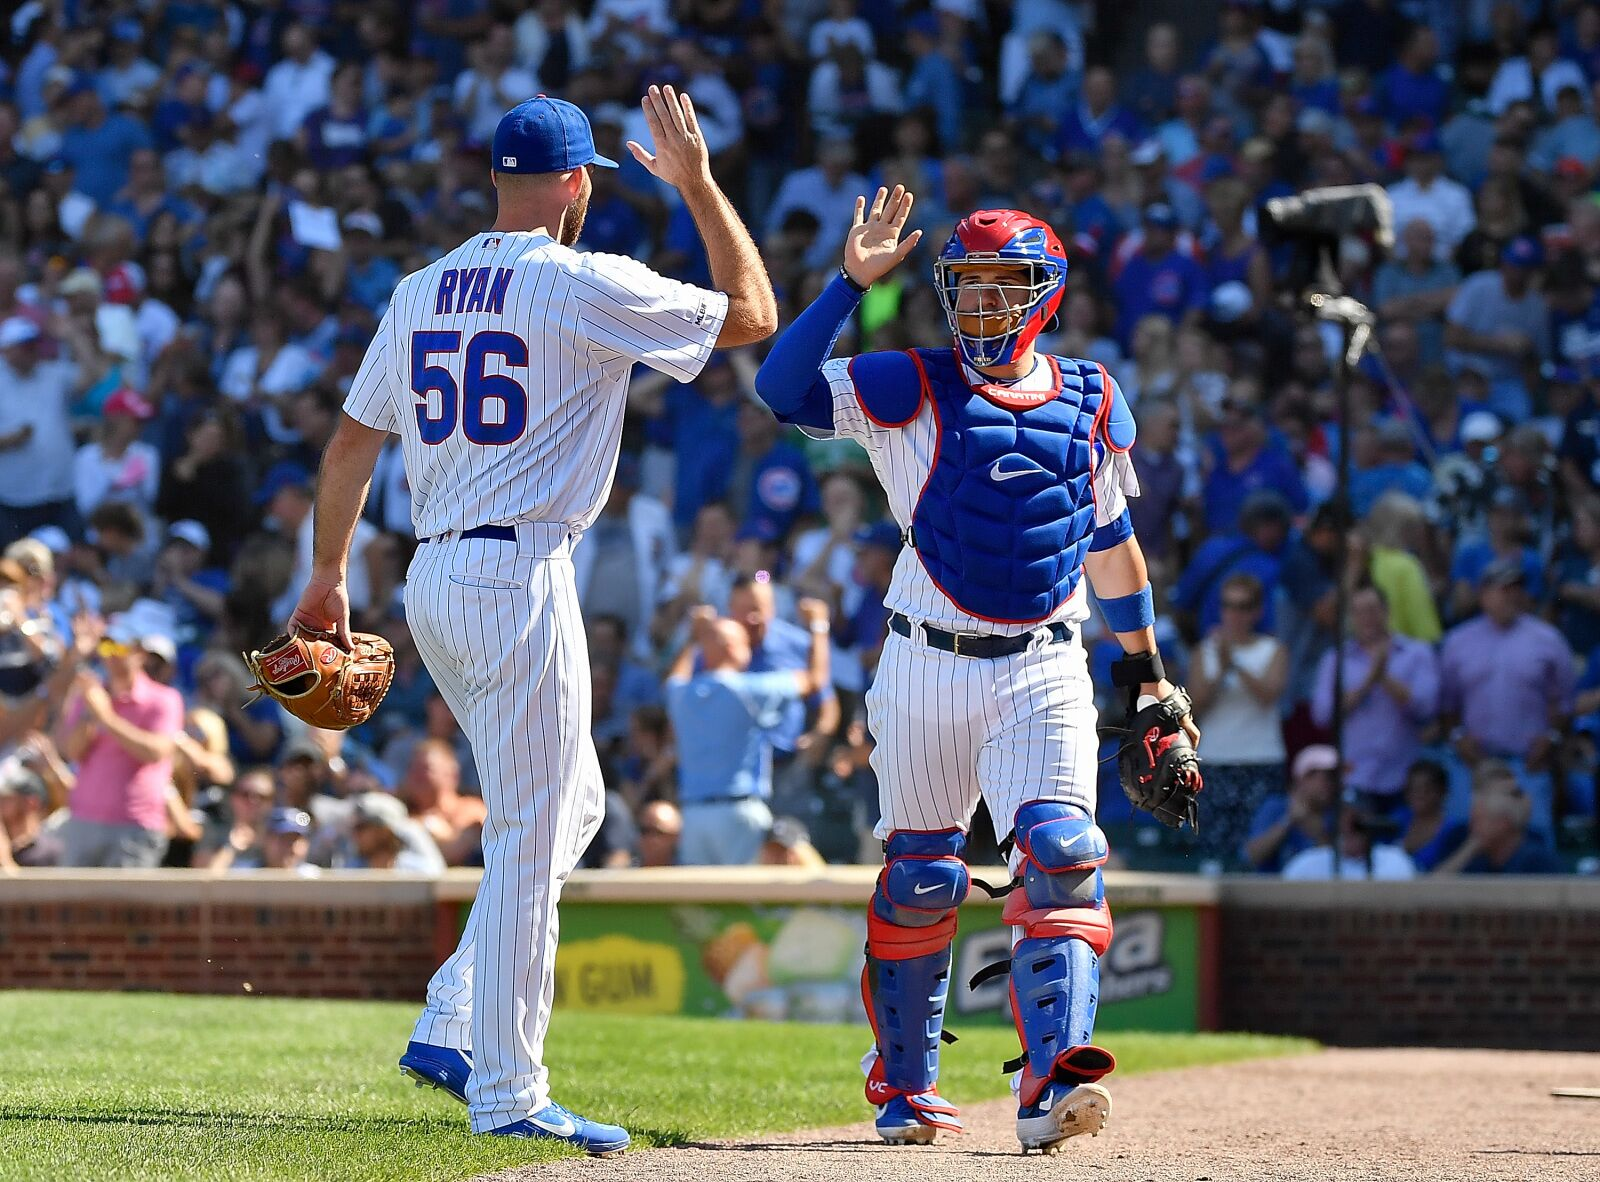 Chicago Cubs: Kyle Ryan has been outstanding out of the bullpen